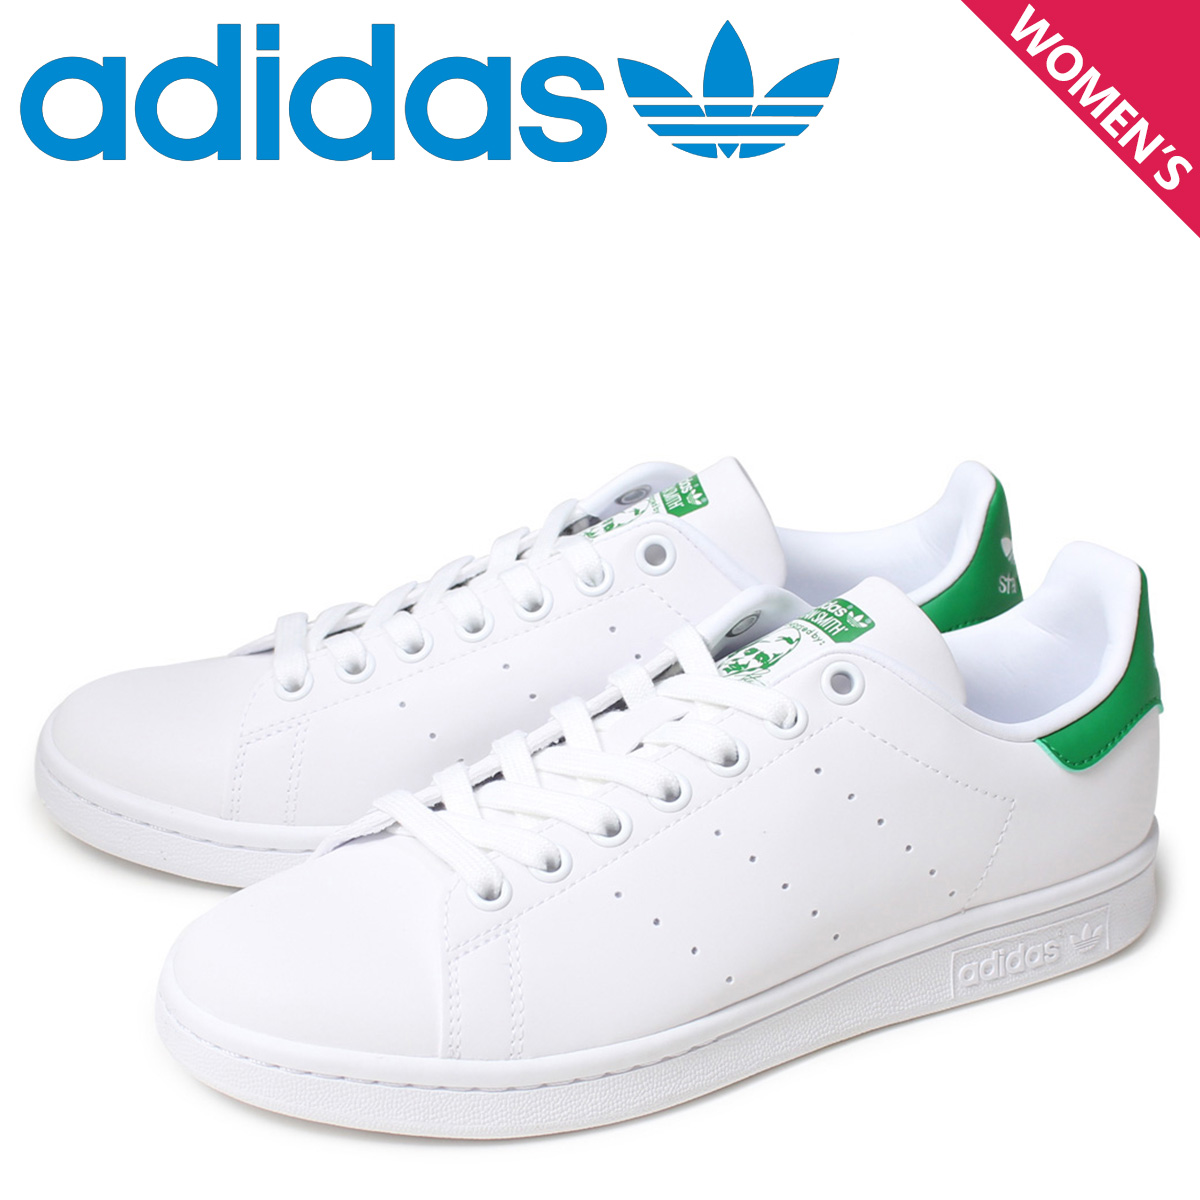 reputable site 2a5b6 8f3e5 Adidas Stan Smith Lady s sneakers adidas originals STAN SMITH W BB5153  BB5154 shoes white pink originals